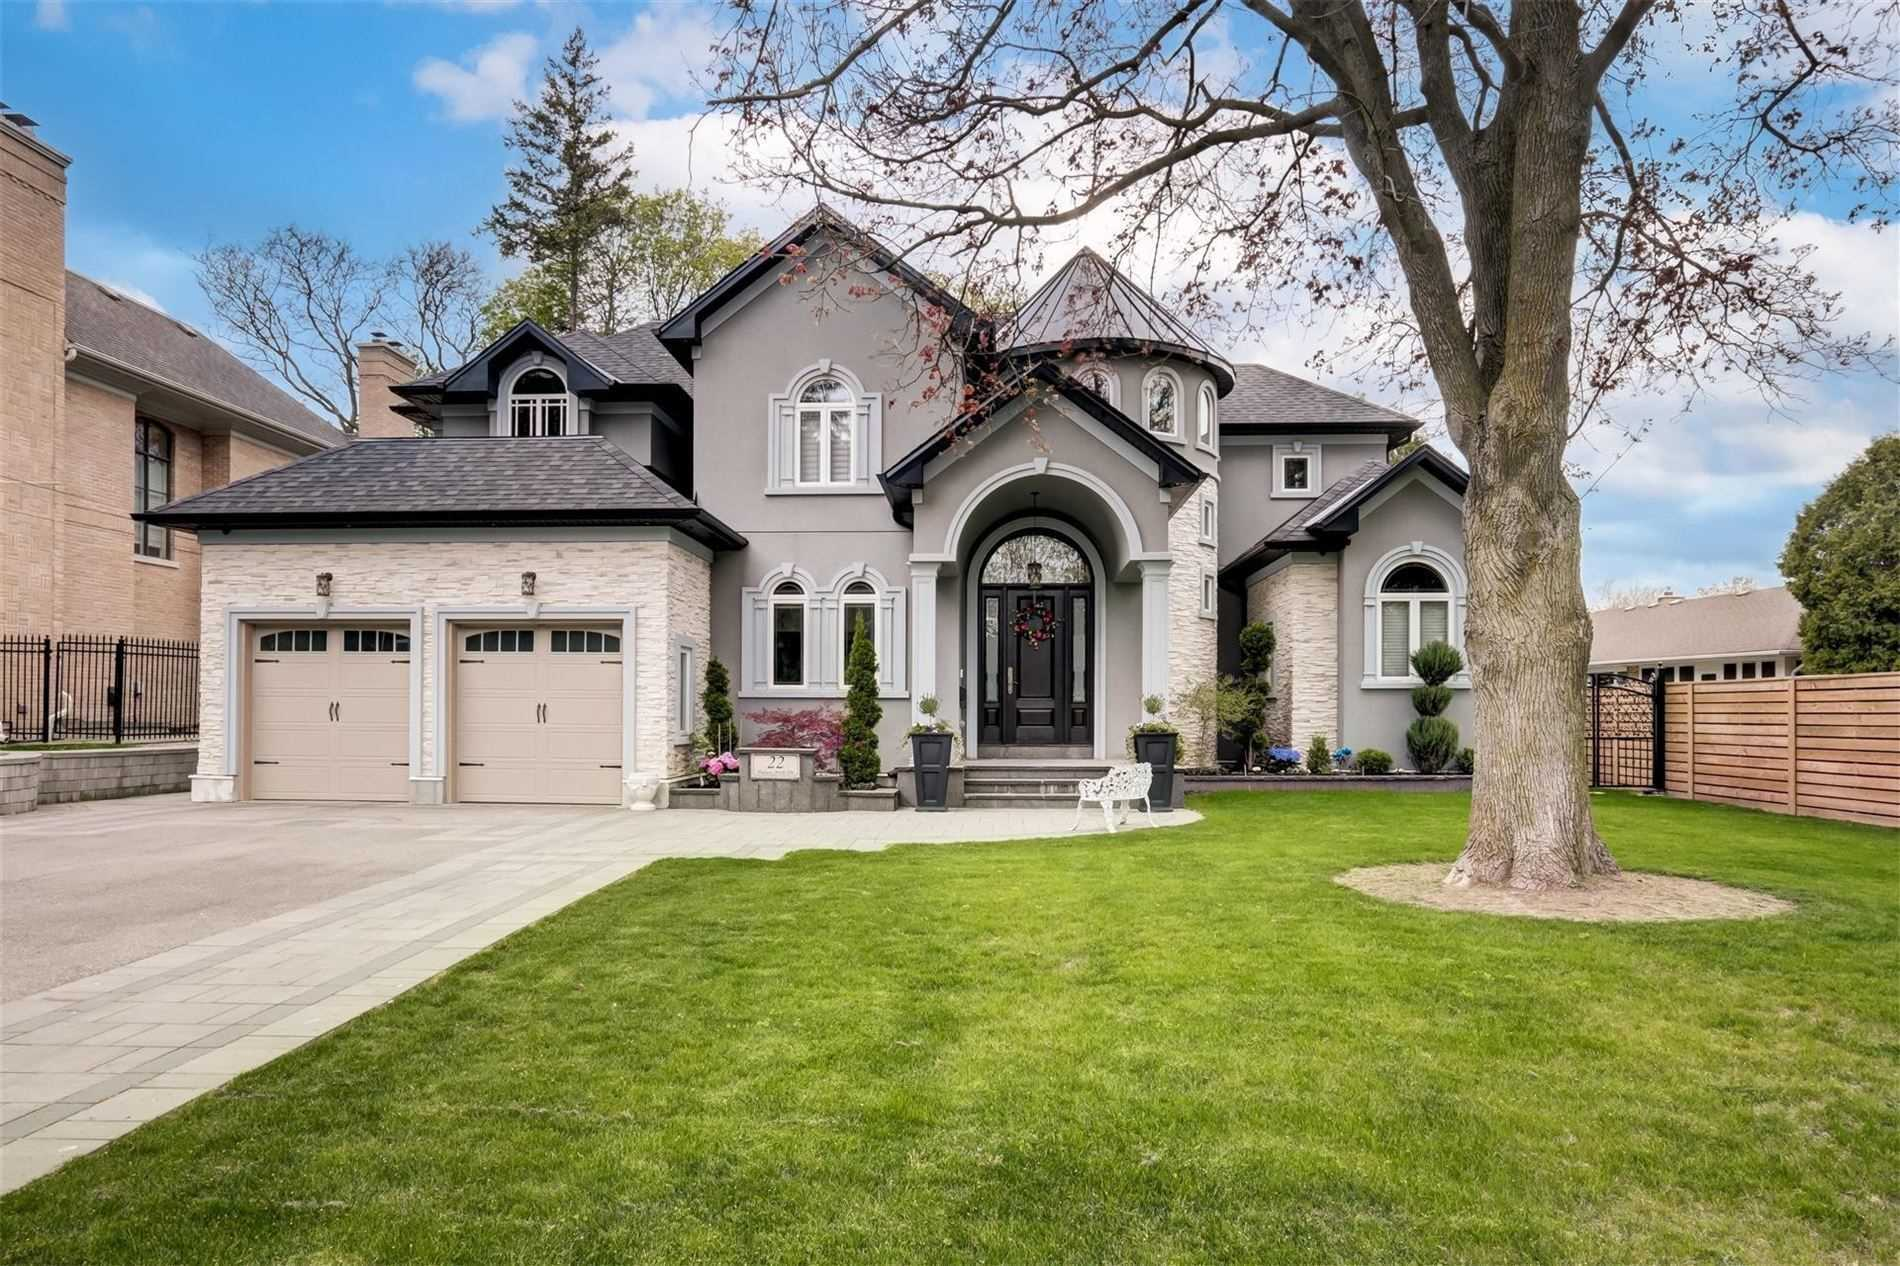 22 Palace Arch Dr, Toronto, Ontario M9A2S1, 4 Bedrooms Bedrooms, 8 Rooms Rooms,6 BathroomsBathrooms,Detached,For Sale,Palace Arch,W5338600